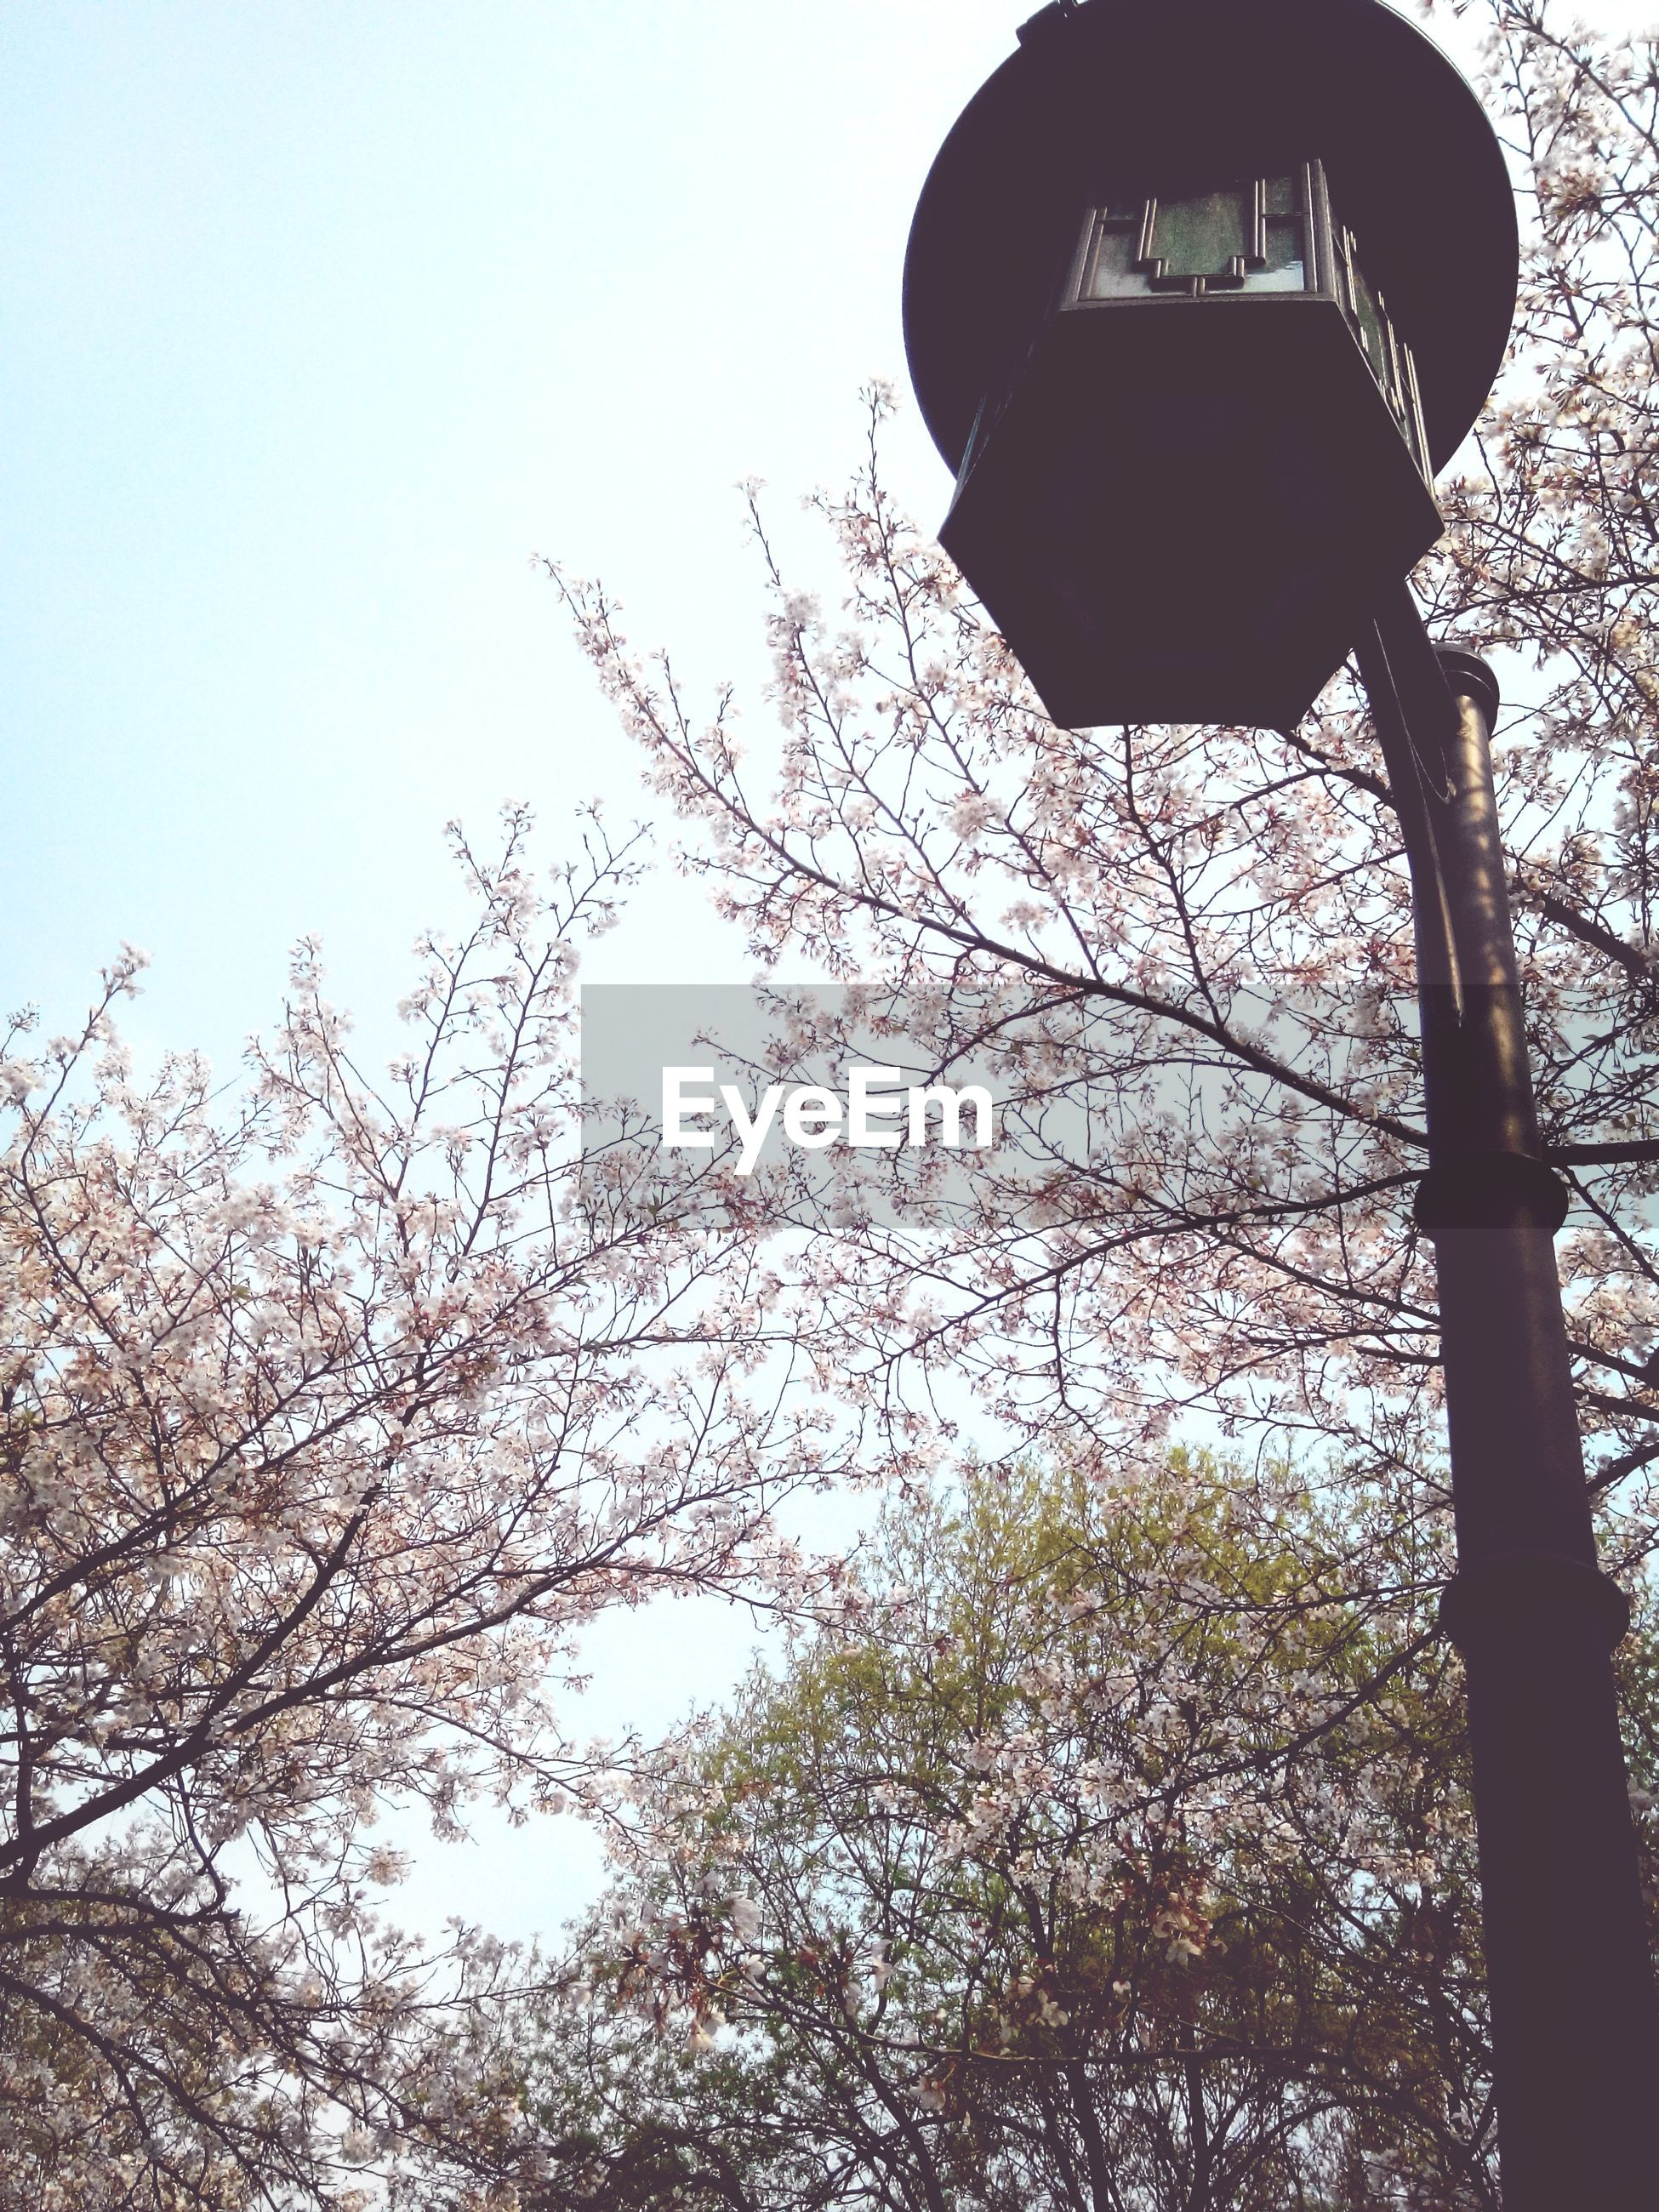 low angle view, tree, clear sky, branch, sky, growth, nature, bare tree, street light, day, outdoors, beauty in nature, flower, no people, tranquility, lighting equipment, leaf, park - man made space, tree trunk, silhouette